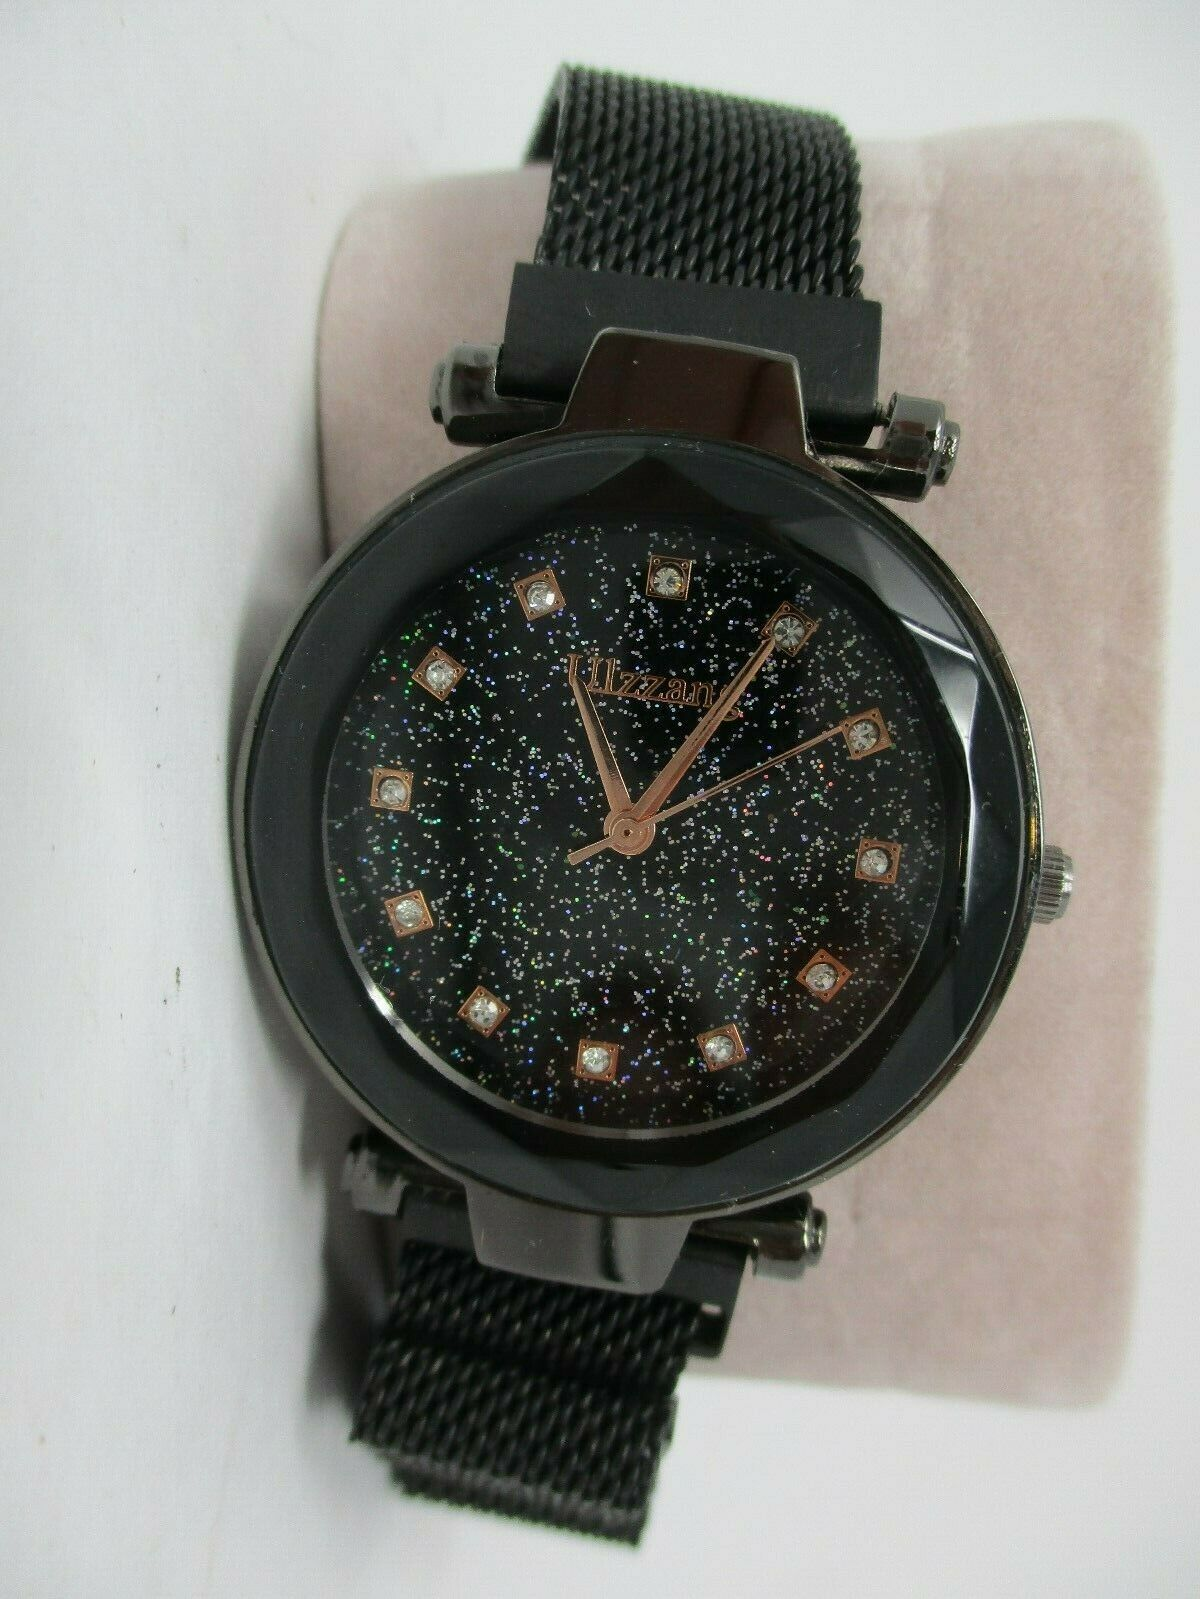 Ulzzang Starry Sky Women's Watch with Crystal Accents Black Magnetic Band